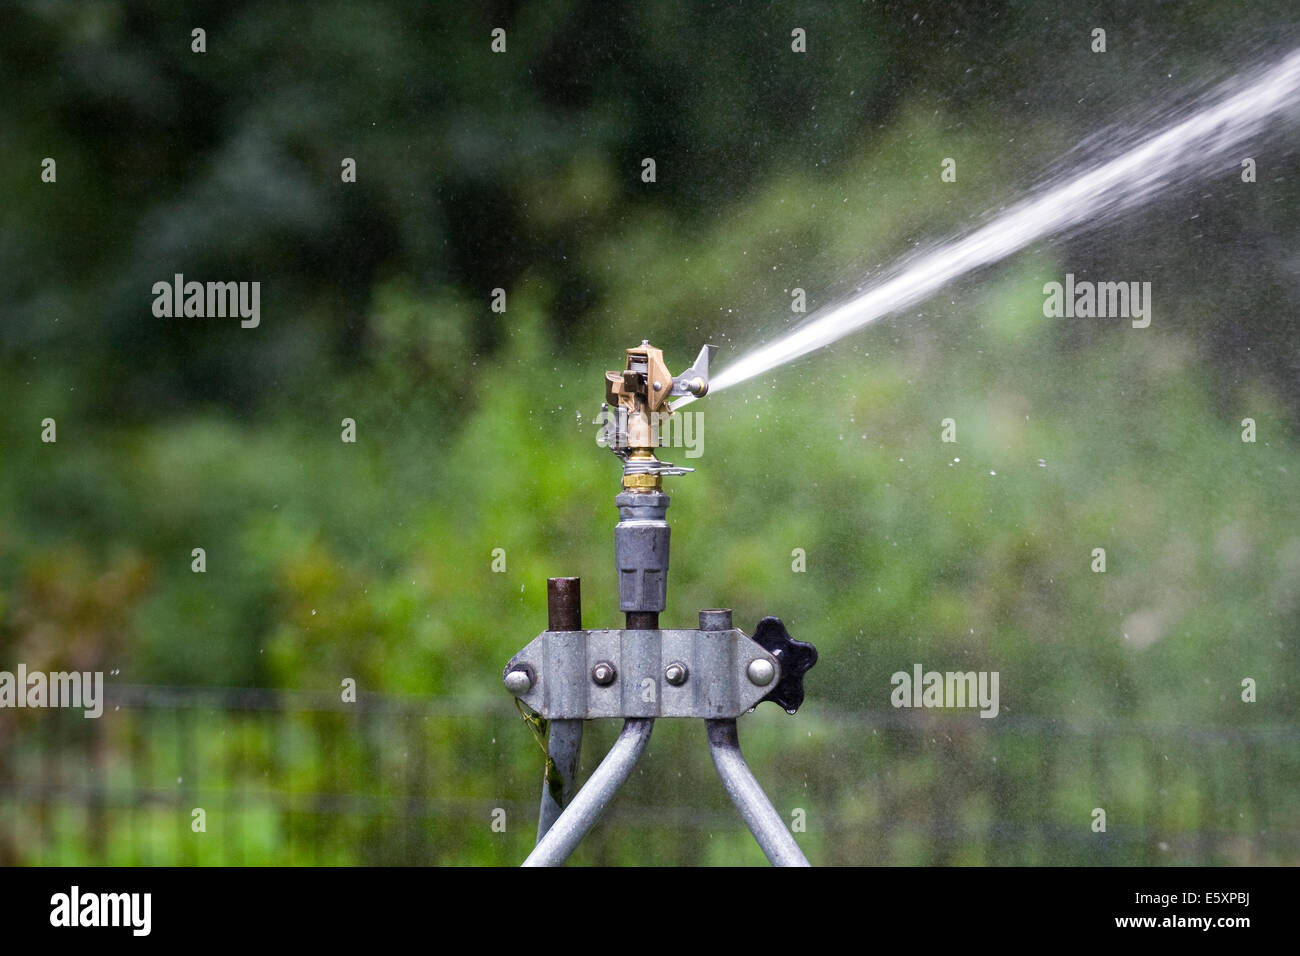 Rain Bird Adjustable Brass Impact Rotor Sprinklerhead sending a stream of  water to the right side - Stock Image